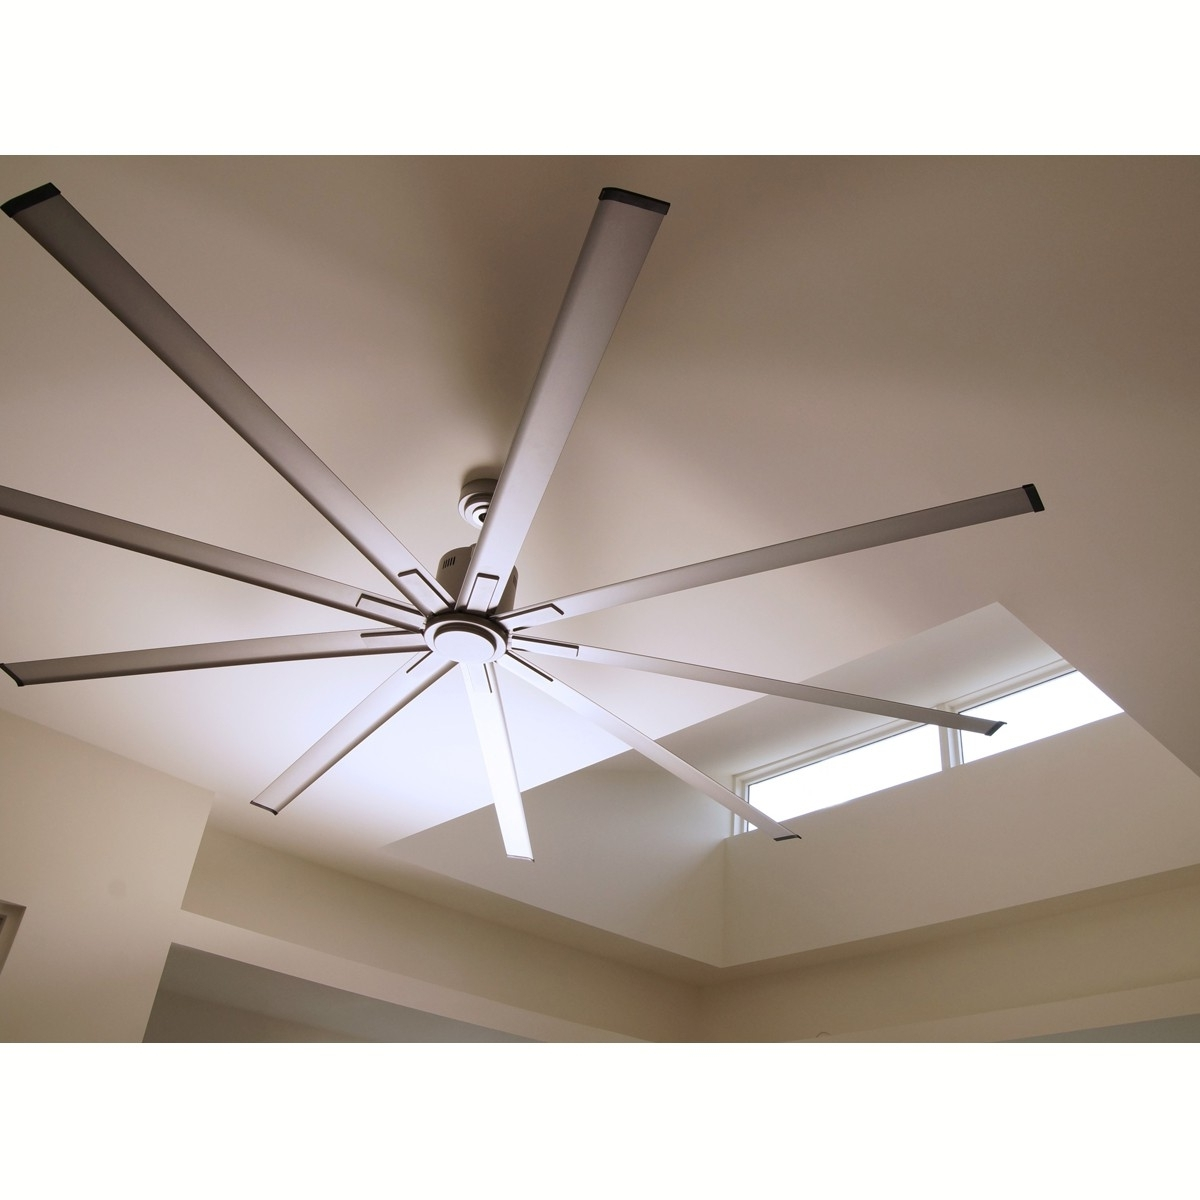 Current 72 Inch Outdoor Ceiling Fans Regarding 20 72 Ceiling Fan, 72 In 8 Blade Brushed Nickel Led Ceiling Fan With (View 10 of 20)